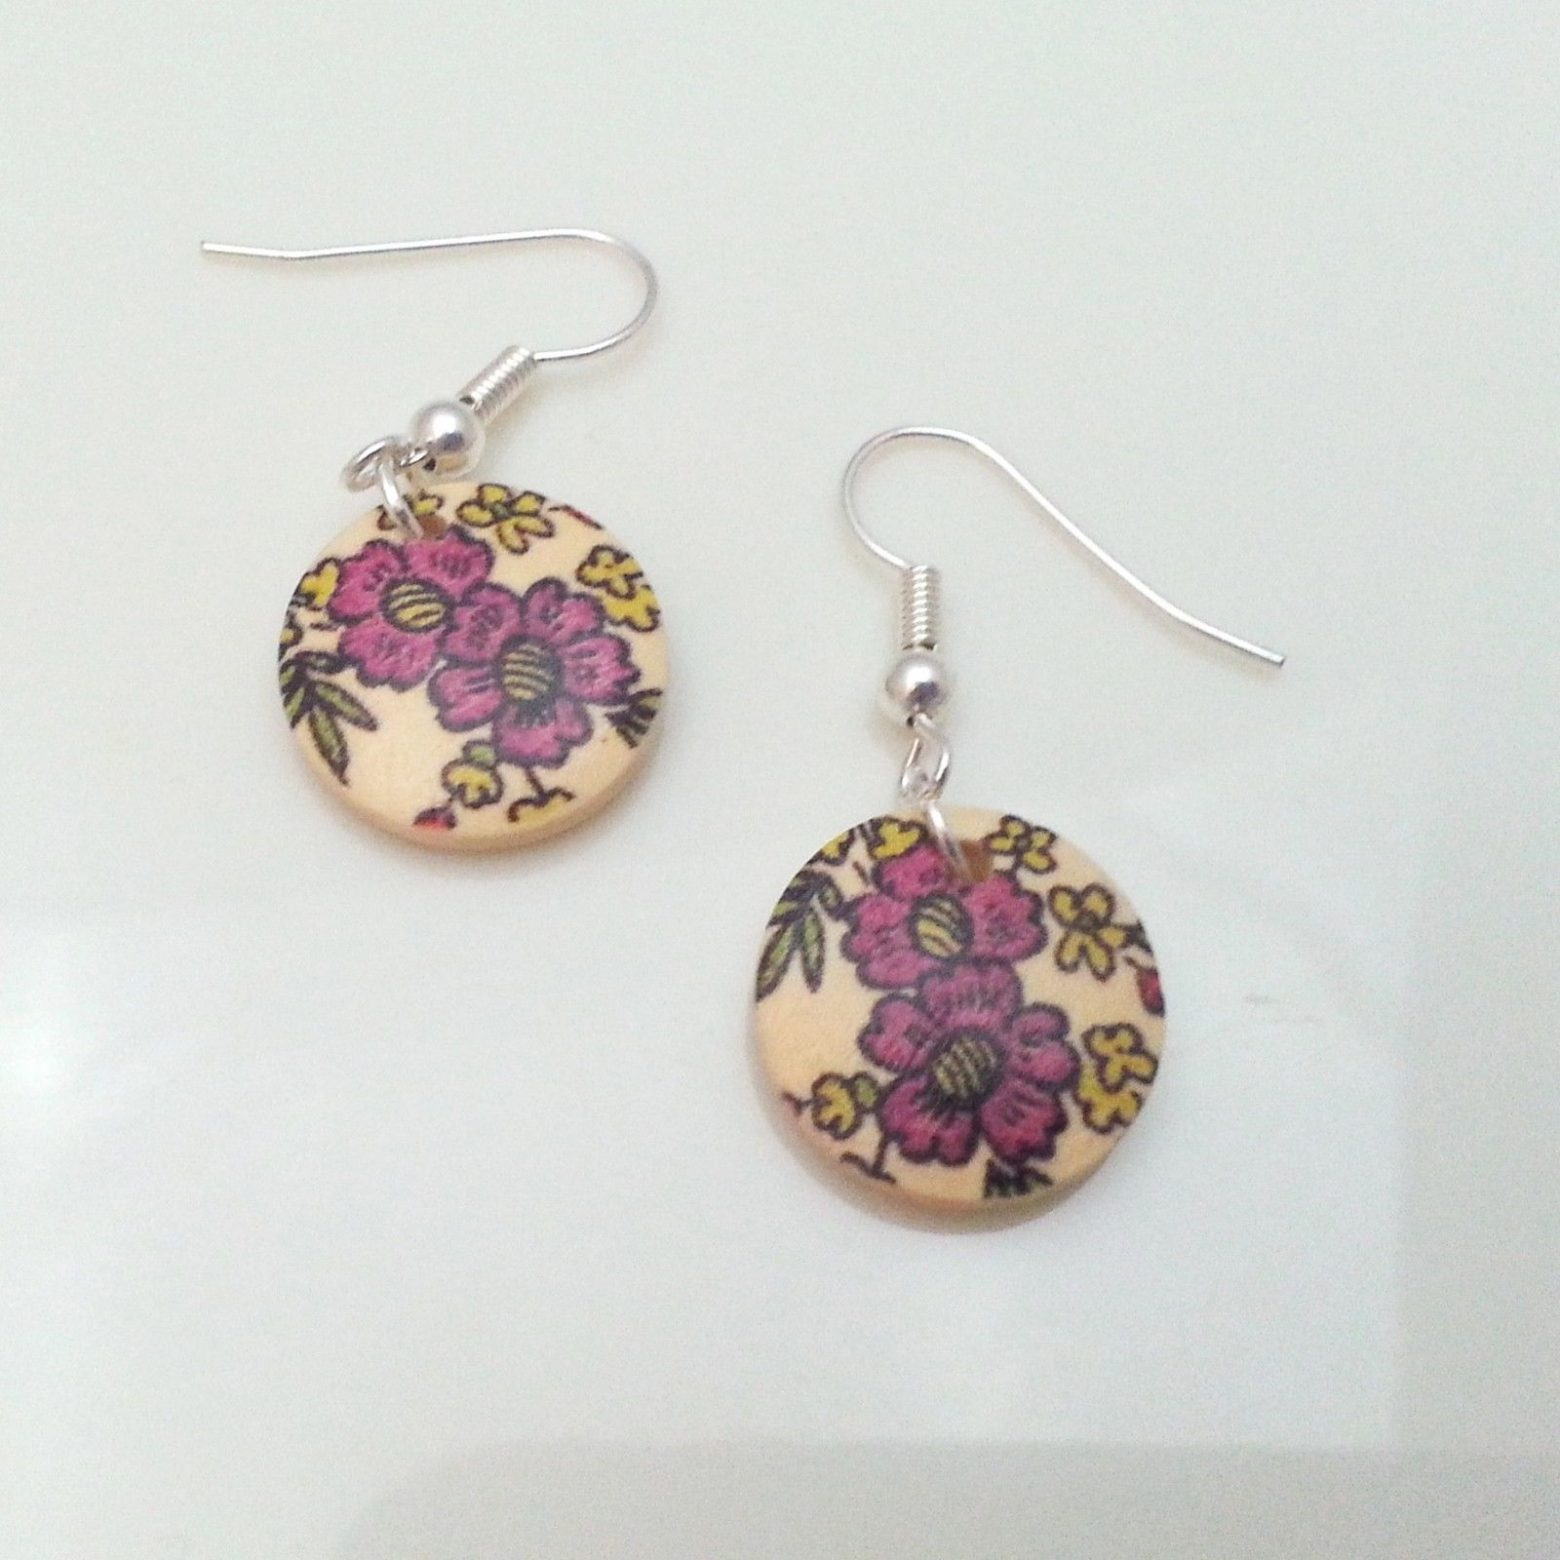 Light-Wooden-Jewellery-Earrings-Disc-Round-Wood-Pink-Flowers-Leaves-Womens-New-161361899276-2